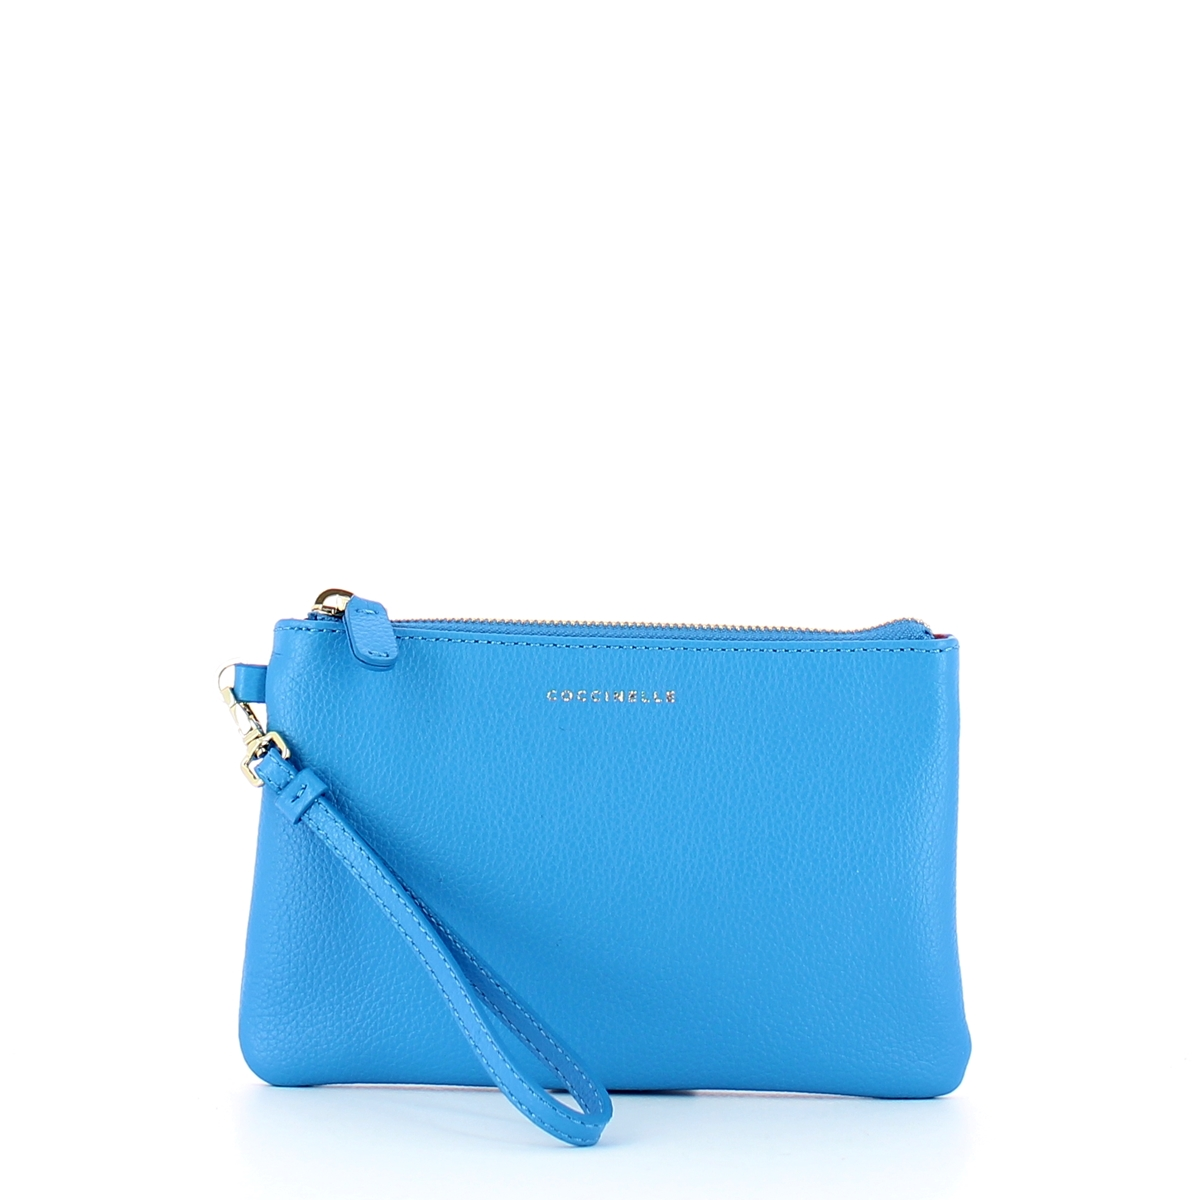 POCHETTE ENVELOPES SIGNAL BLUE